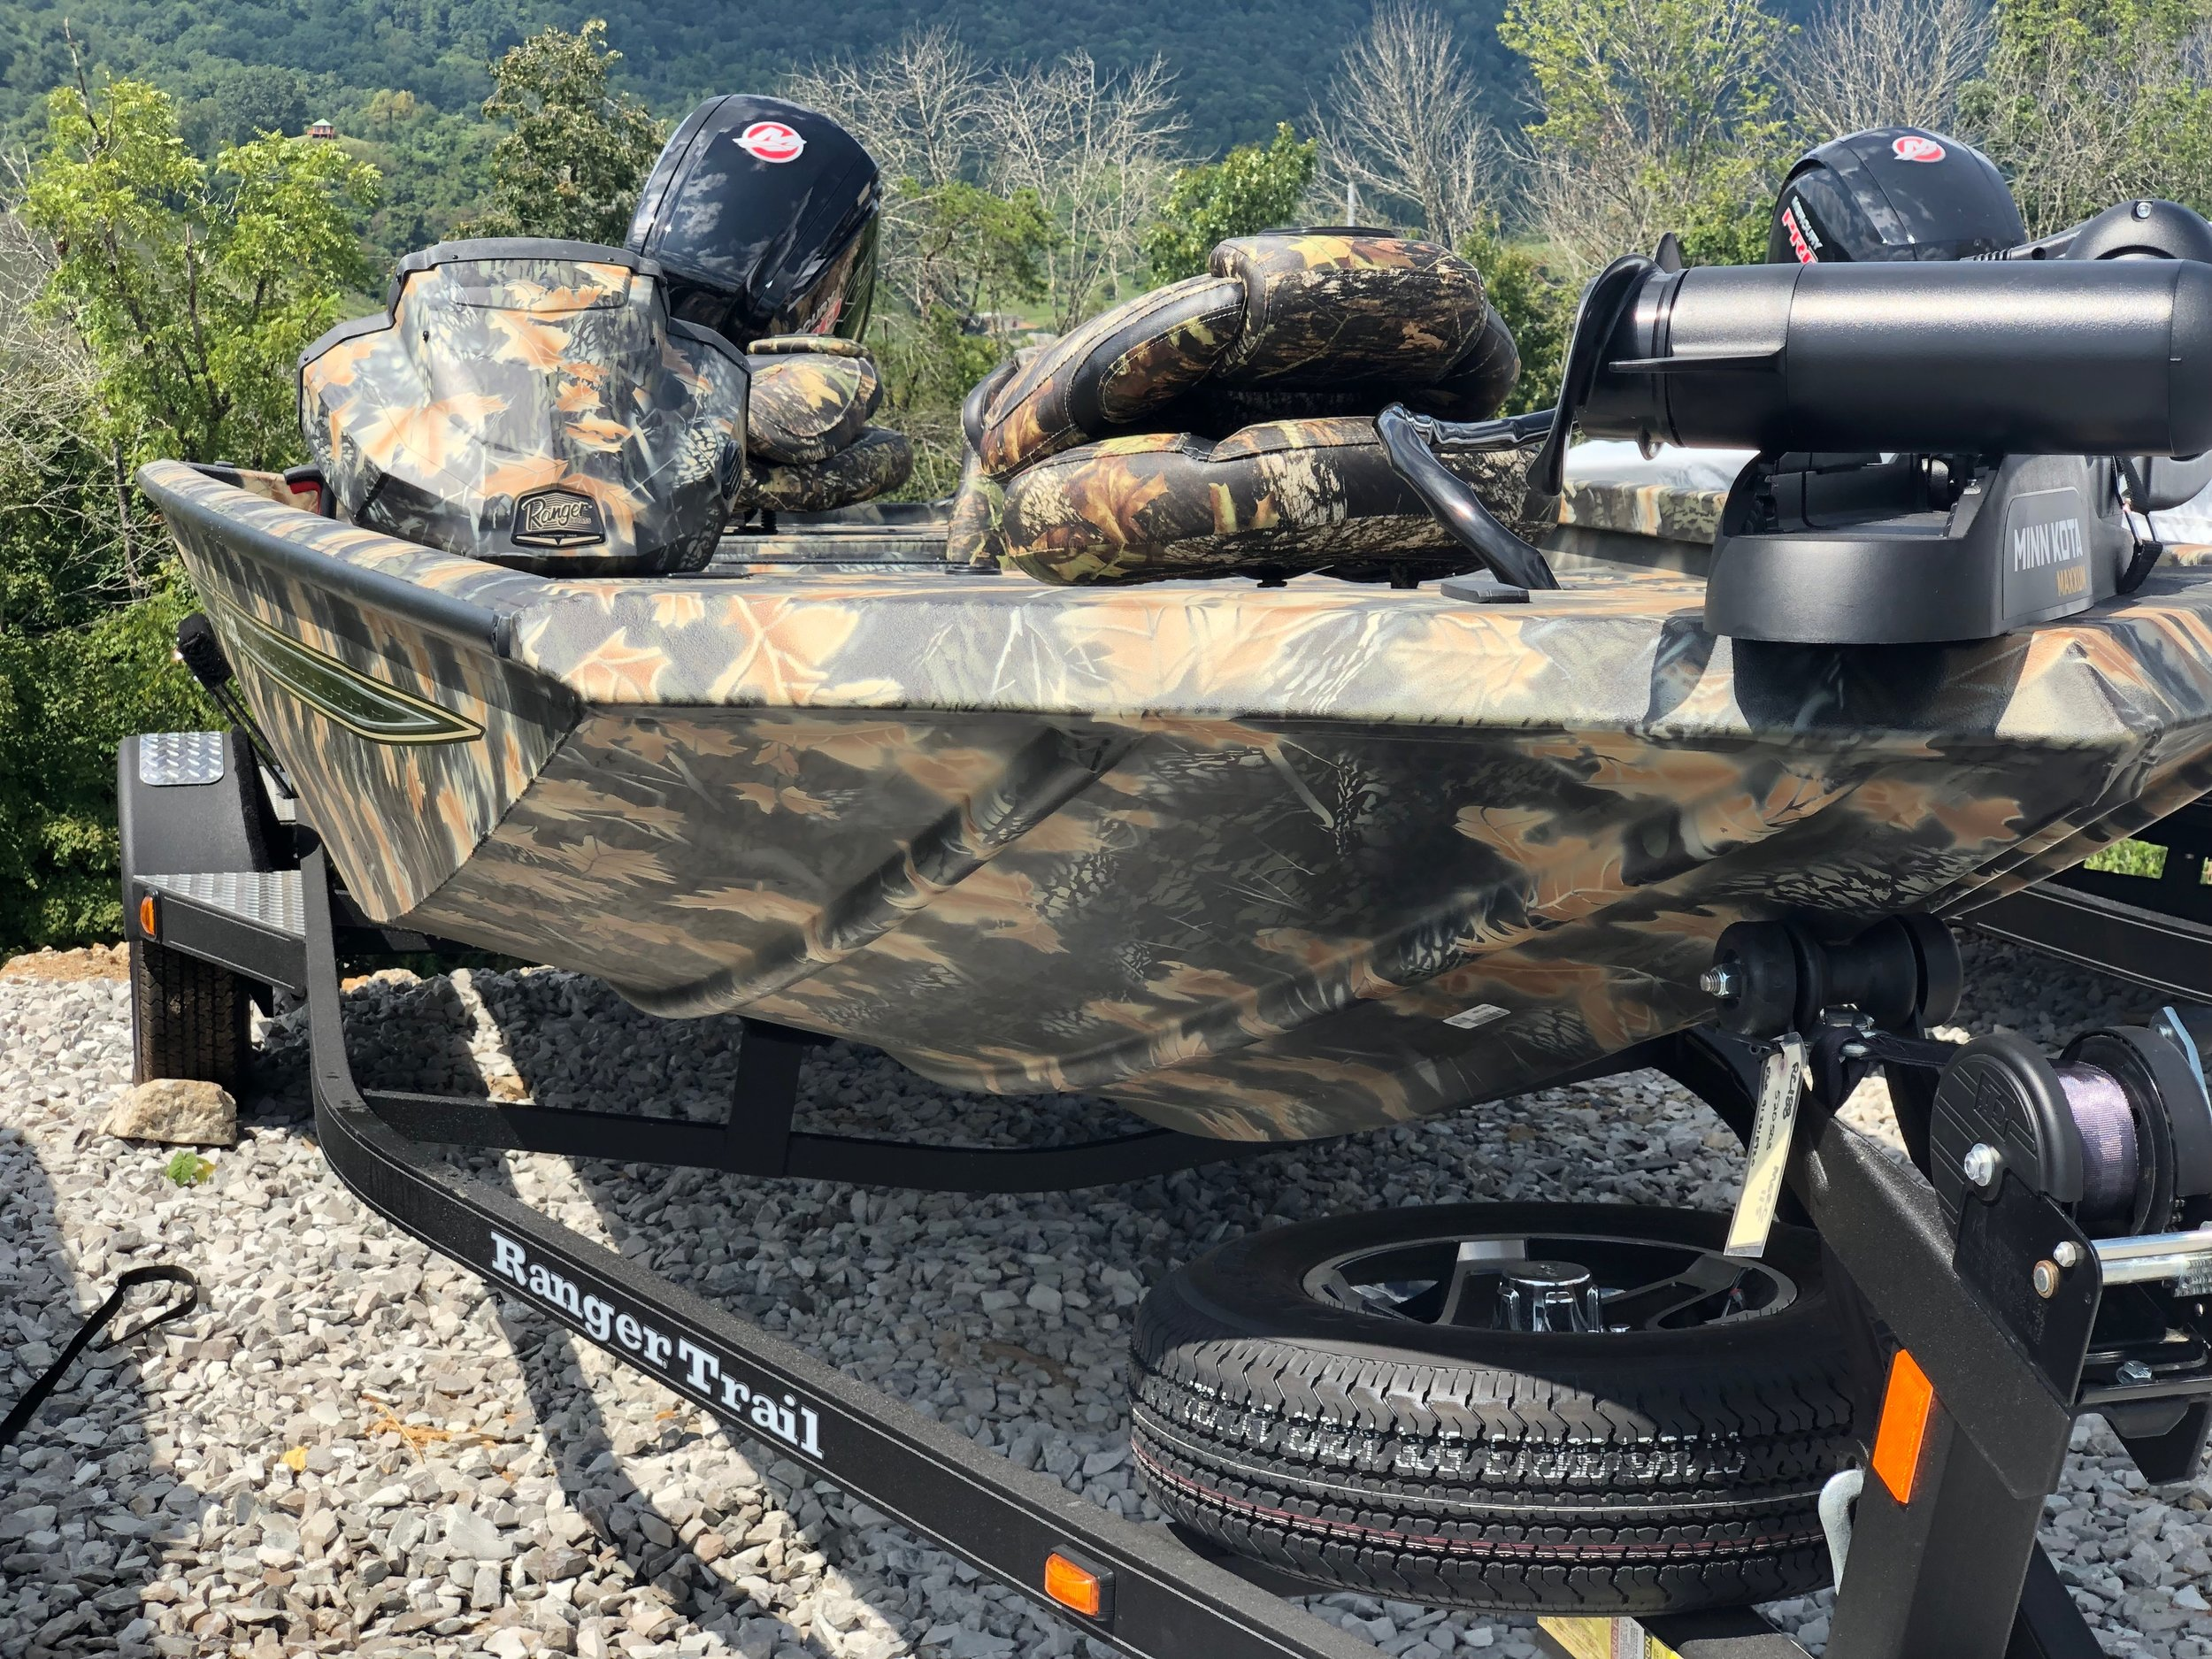 Ranger RT188 - This 2020 camo Ranger has hit the spot for all hunters and fishers and it includes, extra seat, trailer, with extra tire, plenty of storage, Lowrance depth finder, swimming ladder, Minn Kota Maxxum trolling motor, detachable tongue, cover, and a mercury 115L Pro XS. Call for price!! Click here for more pictures.